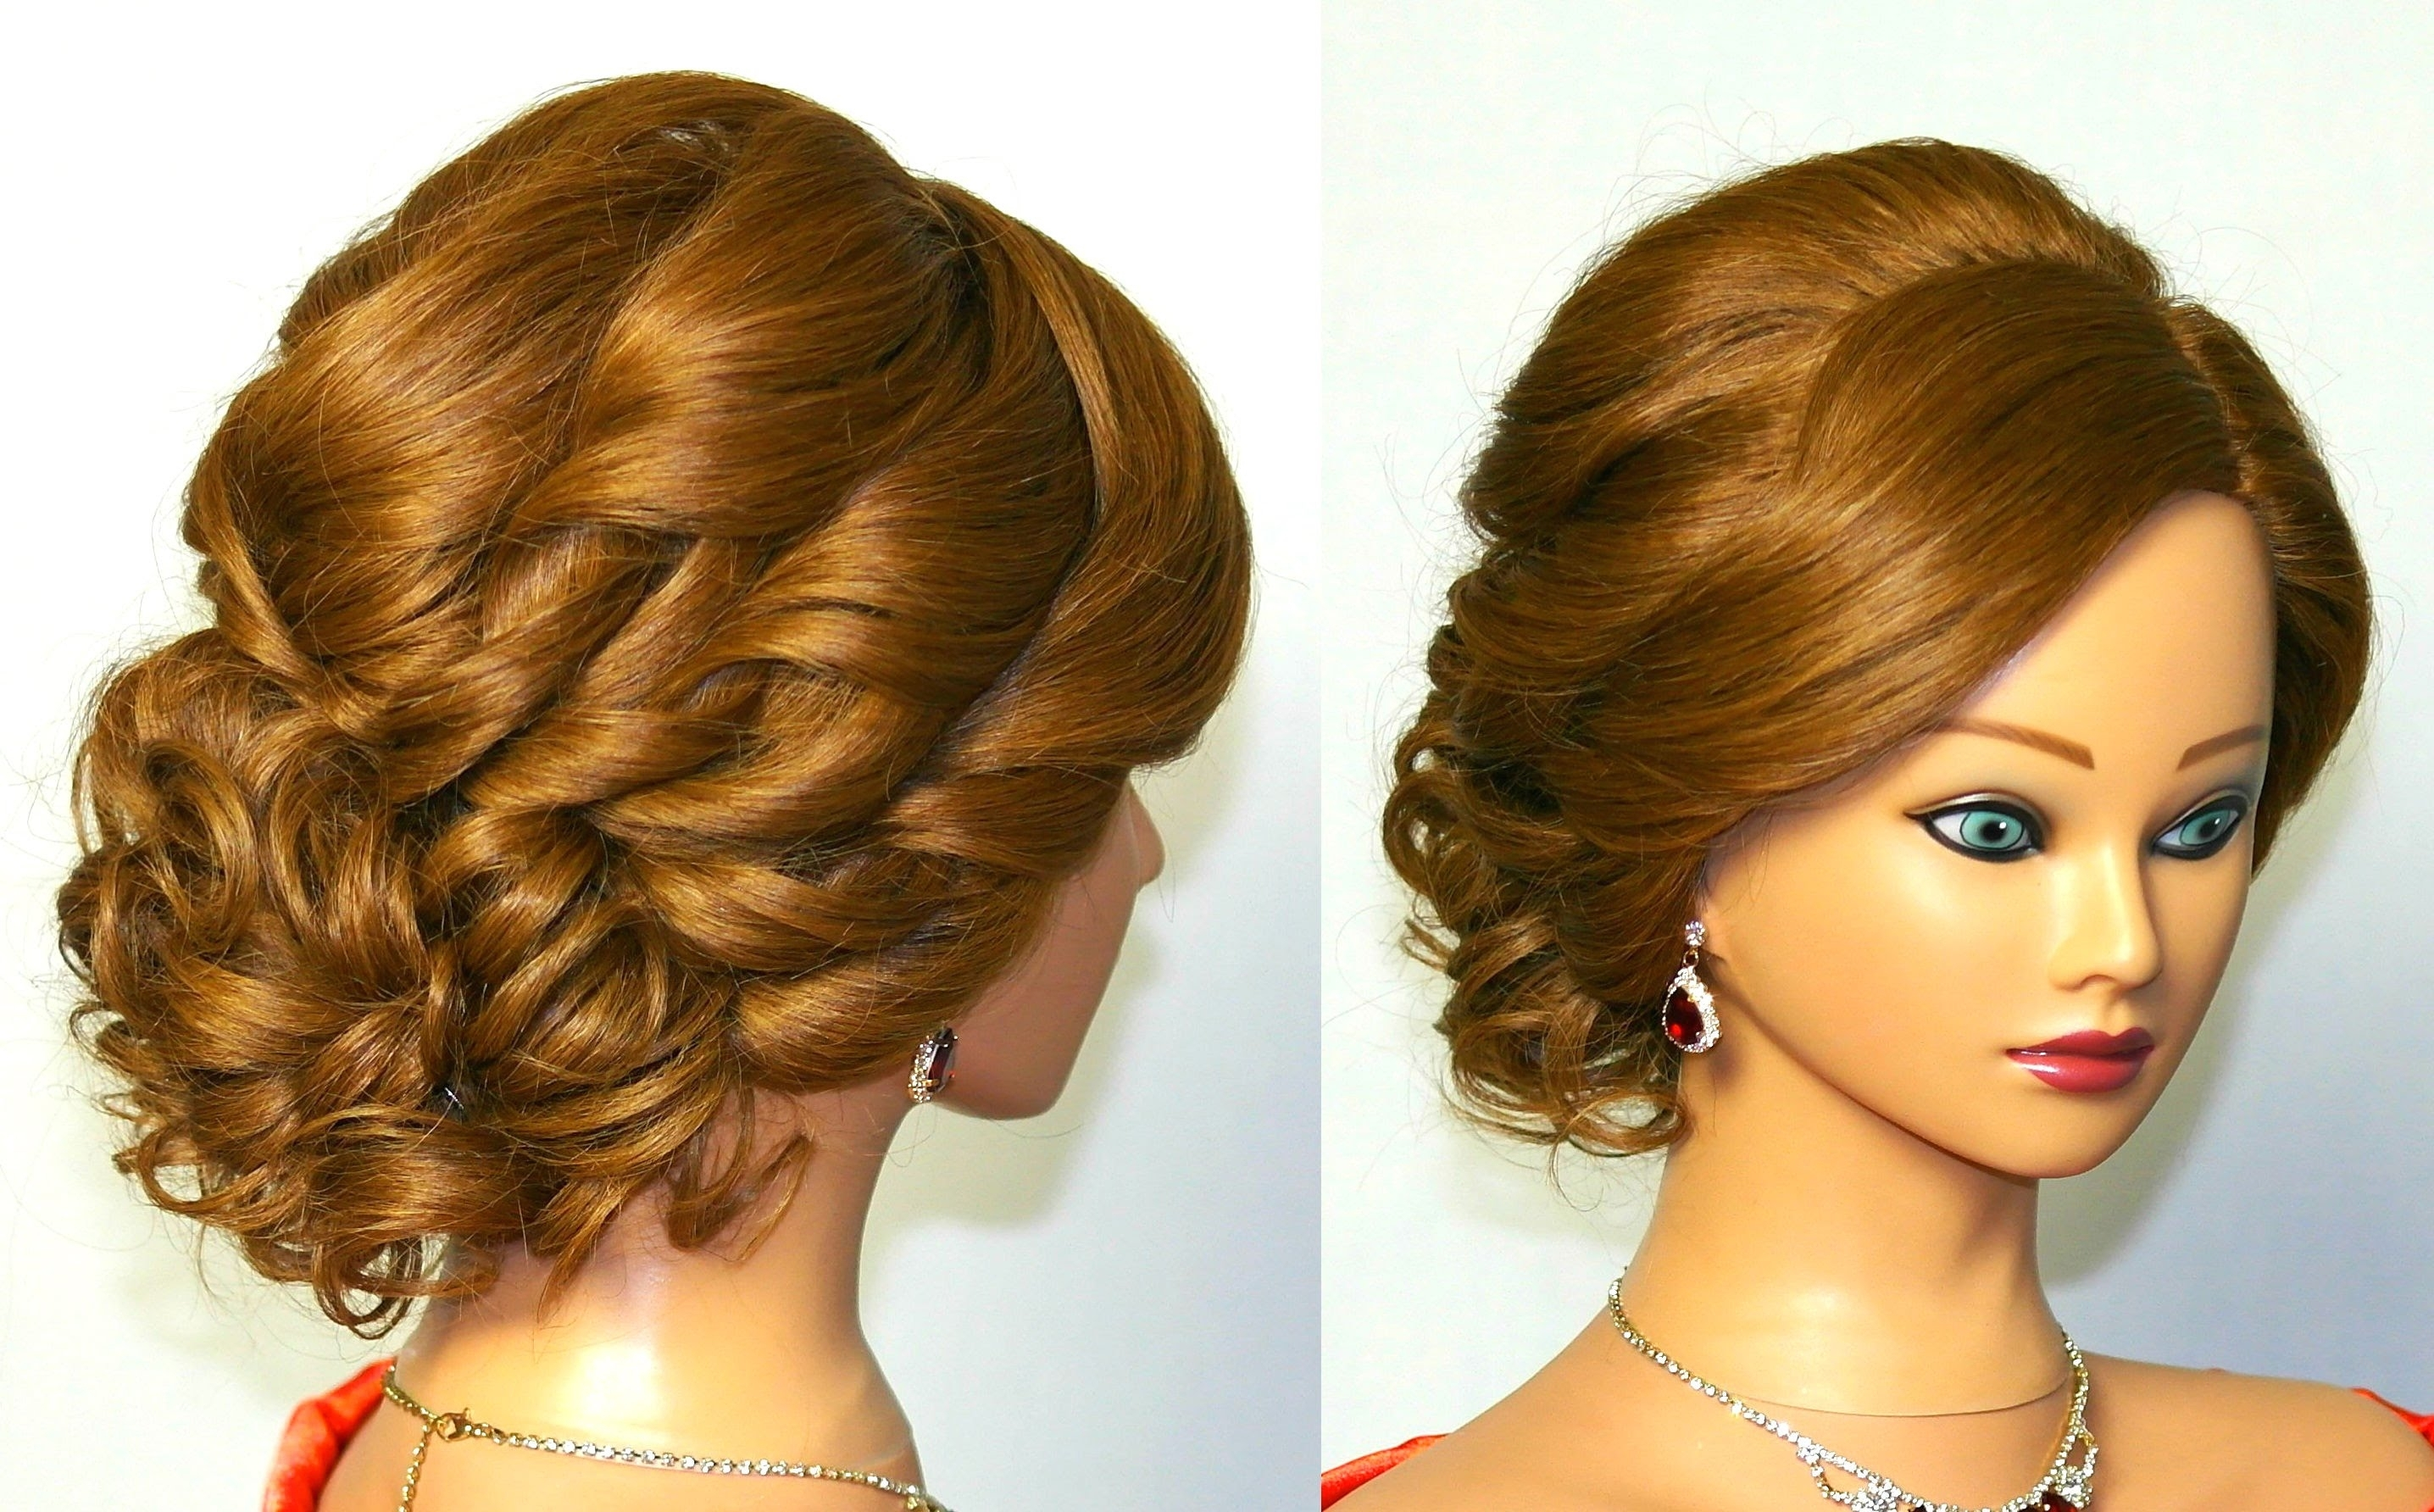 Curly Updo Hairstyles For Long Hair Bridal Curly Updo (View 4 of 15)